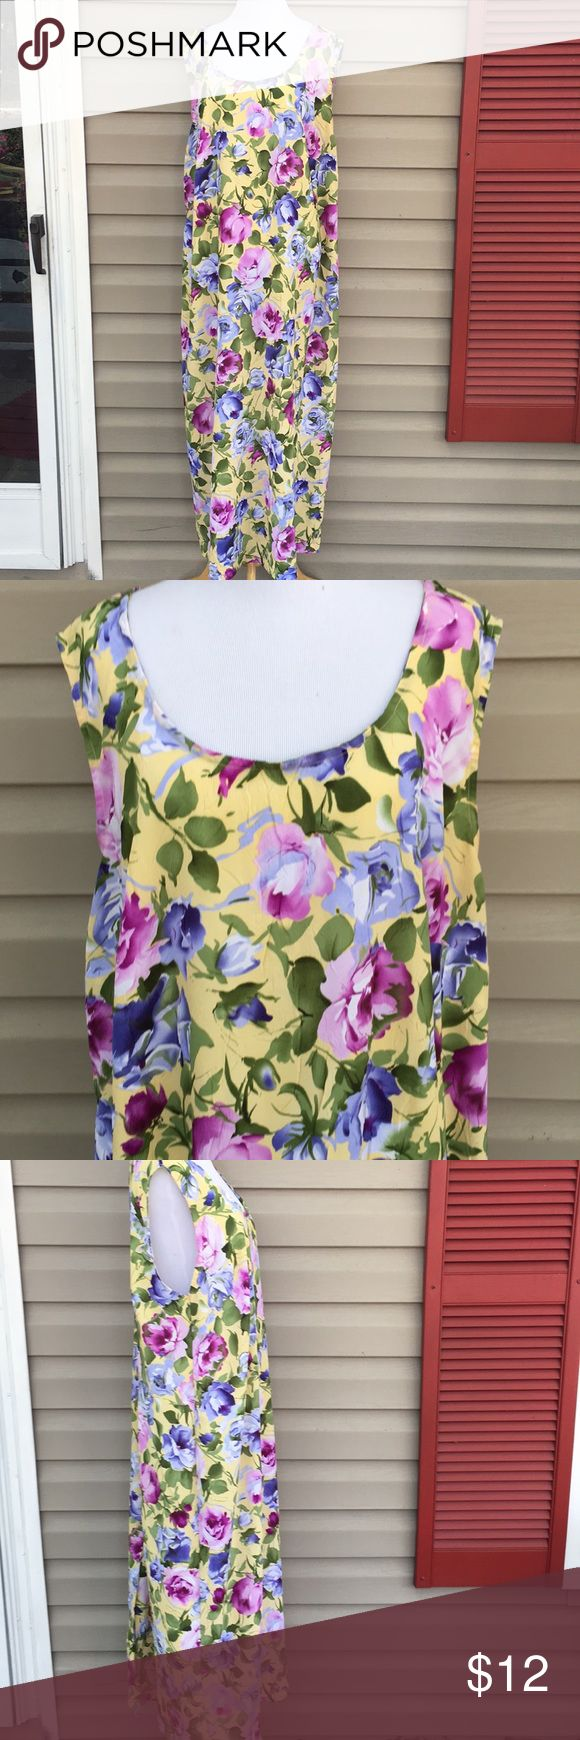 """Esmeralda fashion women's sleeveless spring dress Very pretty sleeveless yellow maxi dress with blue and purple flowers, green leaves, zips up back with 16"""" slit up back hem. 100% polyester 23""""W x 53""""L no snags, stains, pilling or holes. EUC Esmeralda fashions Dresses Maxi"""